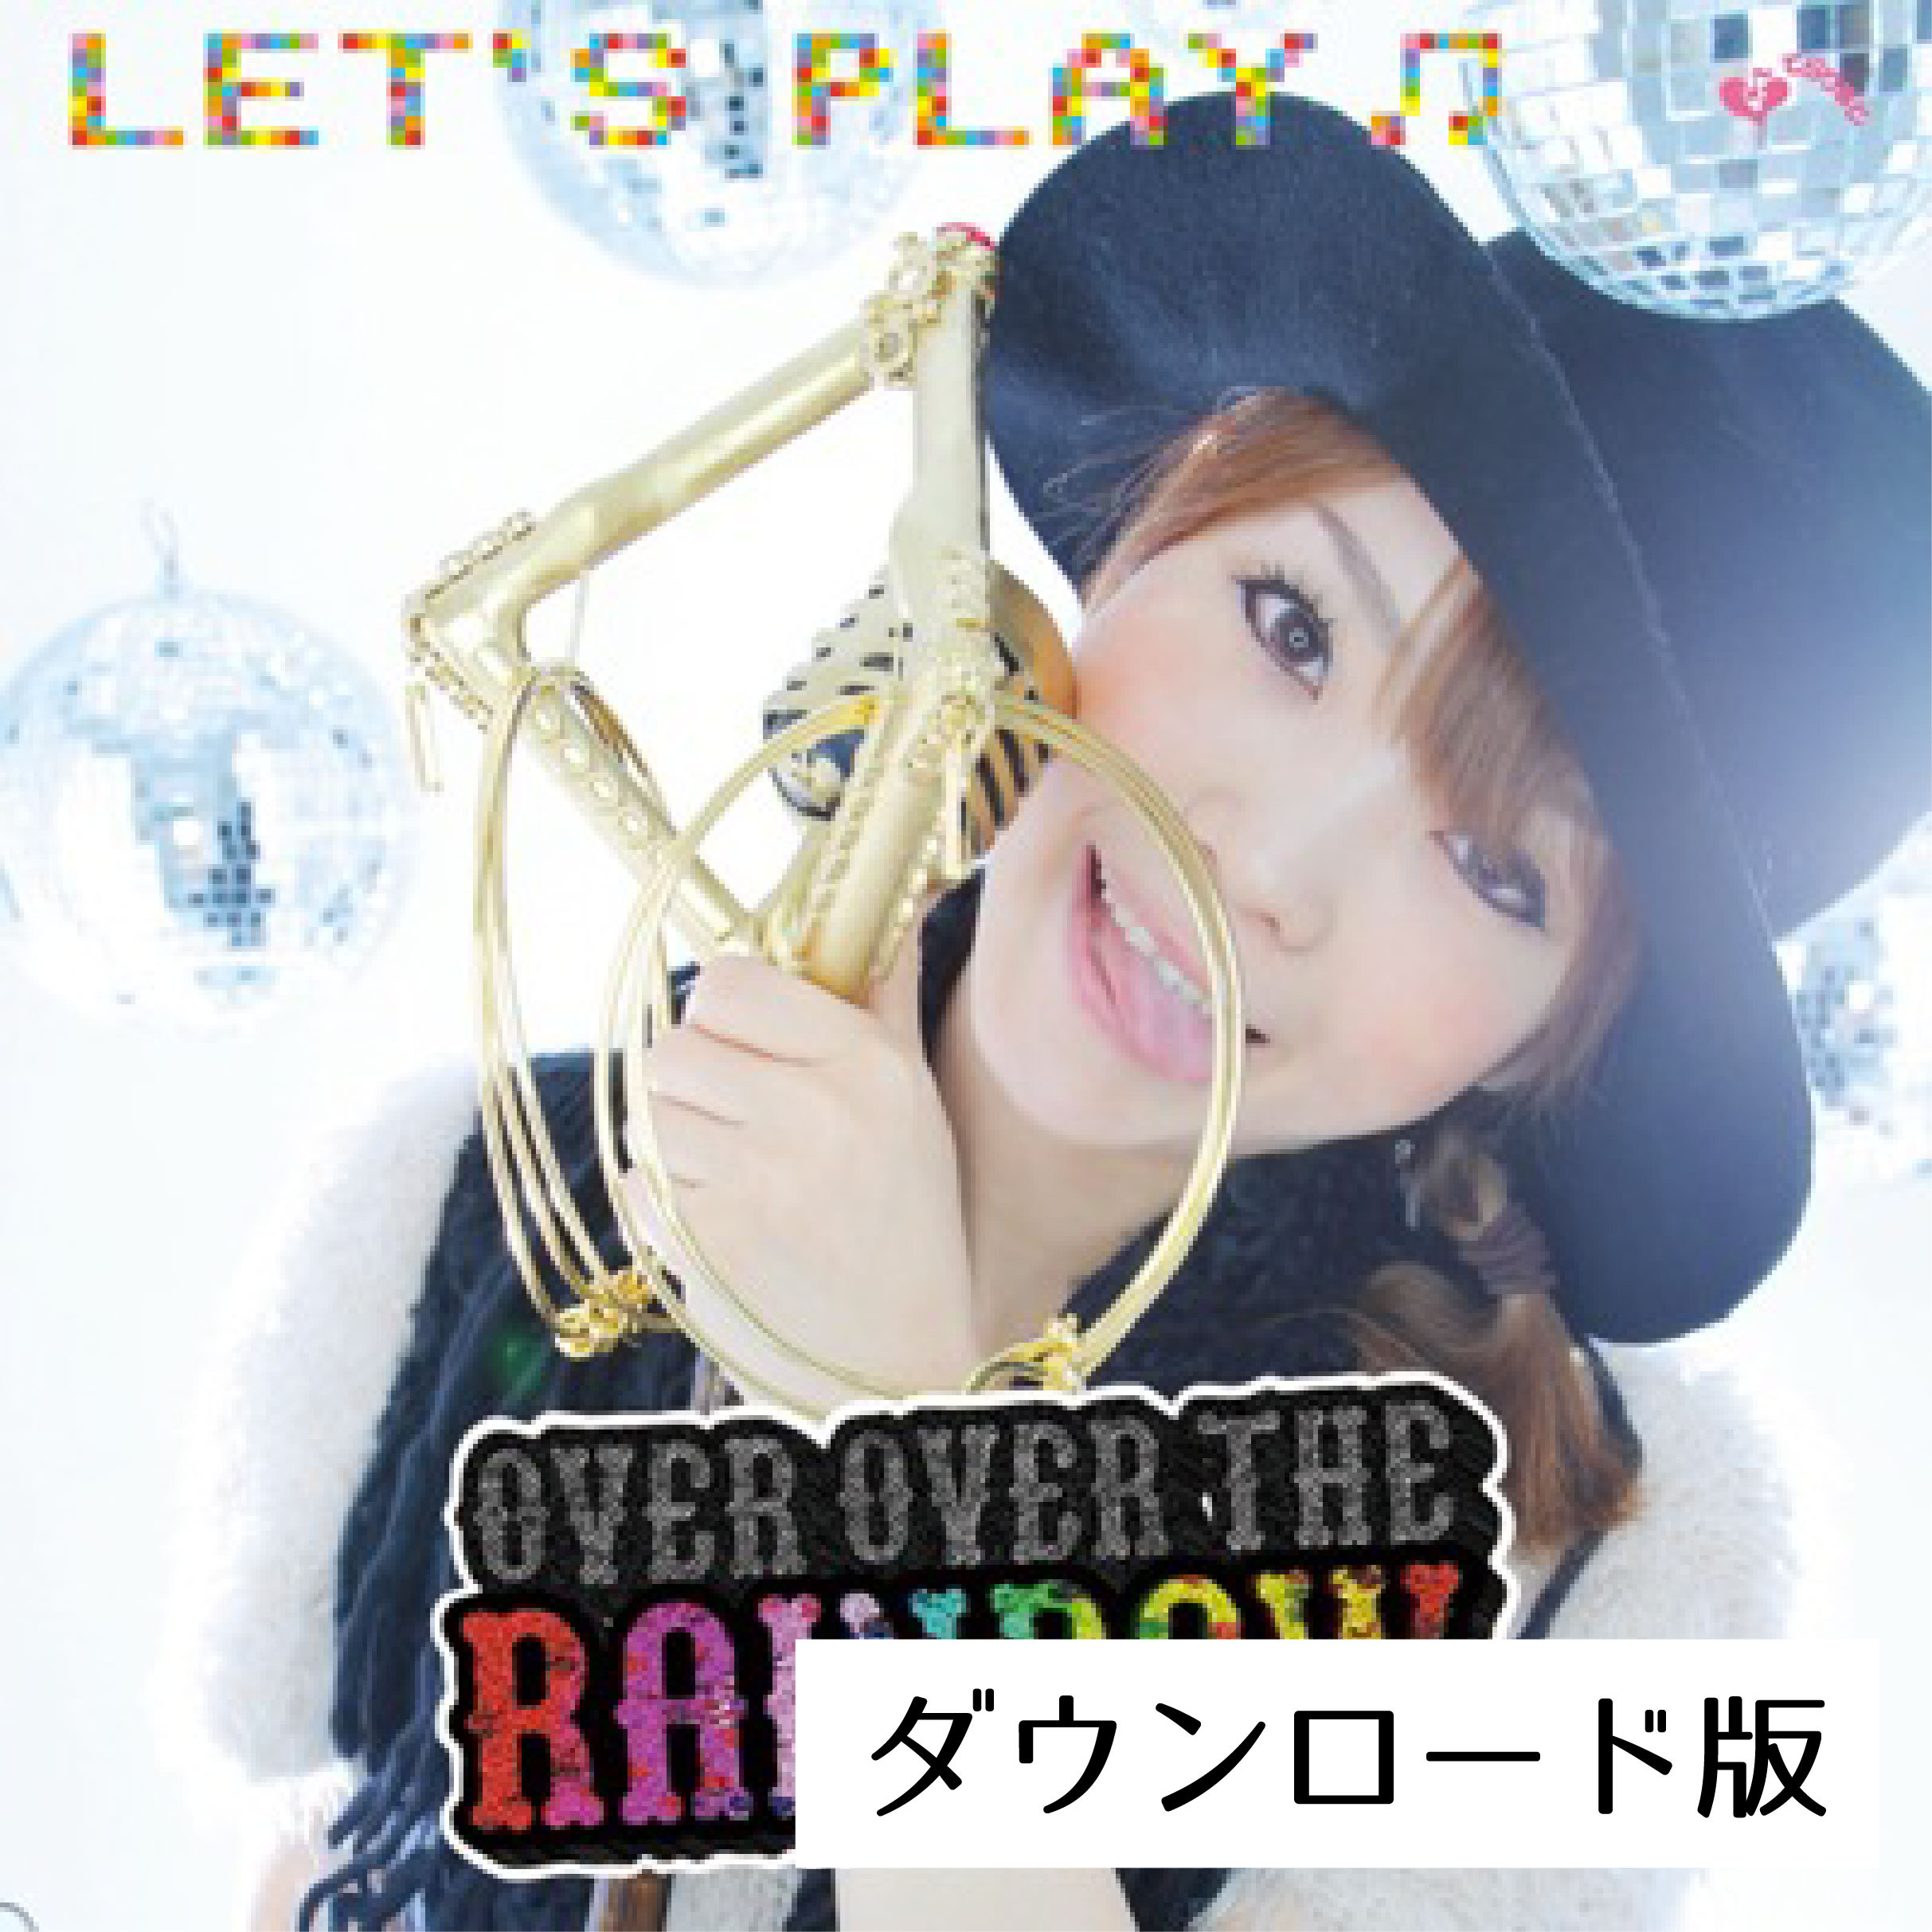 てらりすと 3rd Album『OVER OVER THE RAINBOW』(DL版) - 画像1